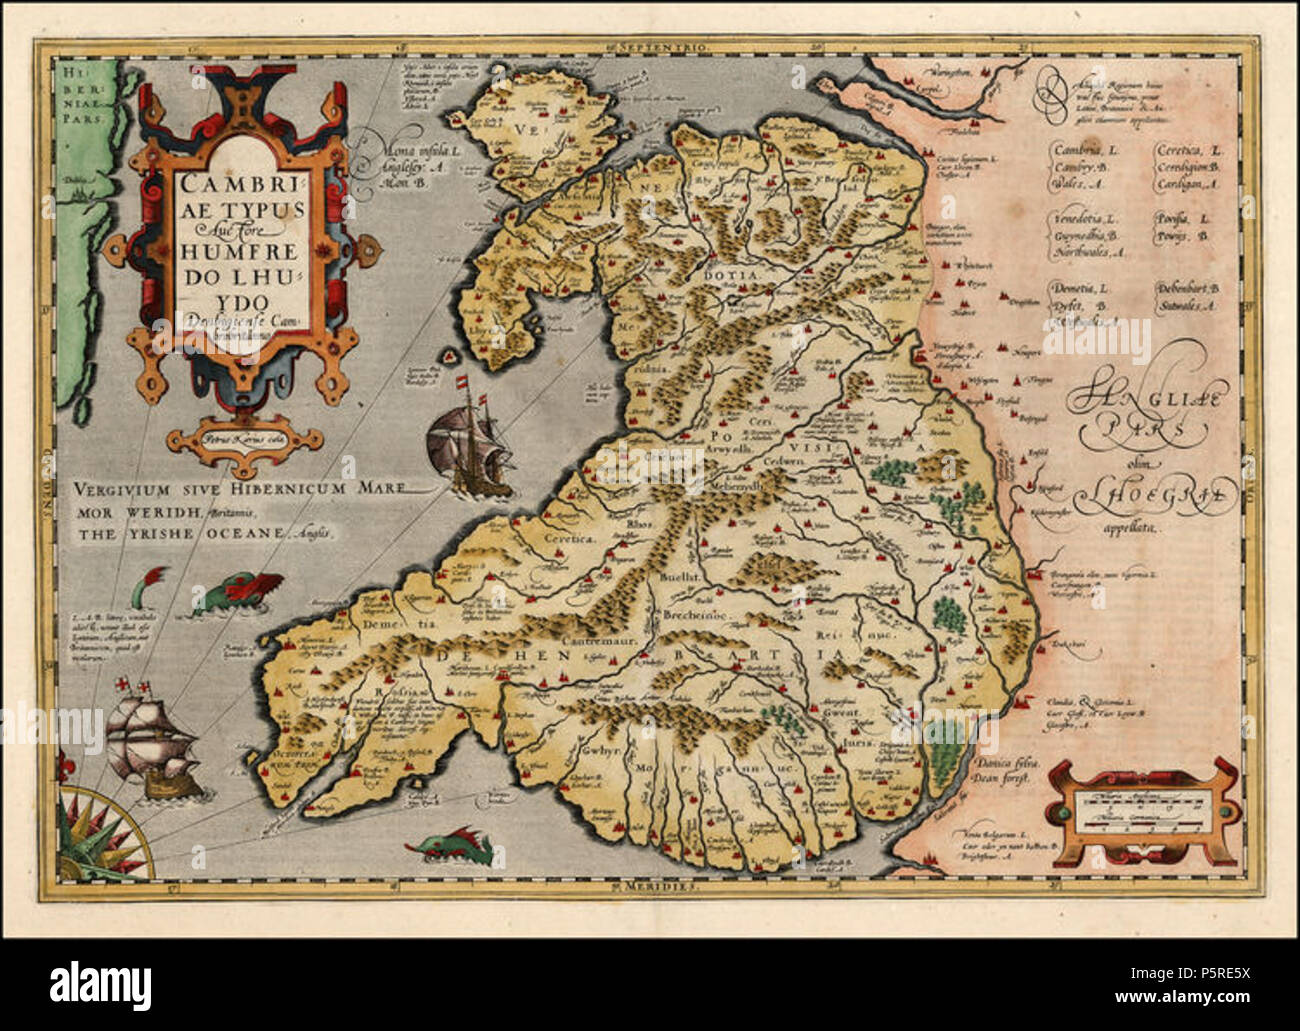 N/A. English: A 1606 version of Humphrey Llwyd's 1573 map of Wales,  Cambriae Typus Edited by Peter Kaerius. 1606. Humphrey Lloyd, edited by  Kaerius 264 ...